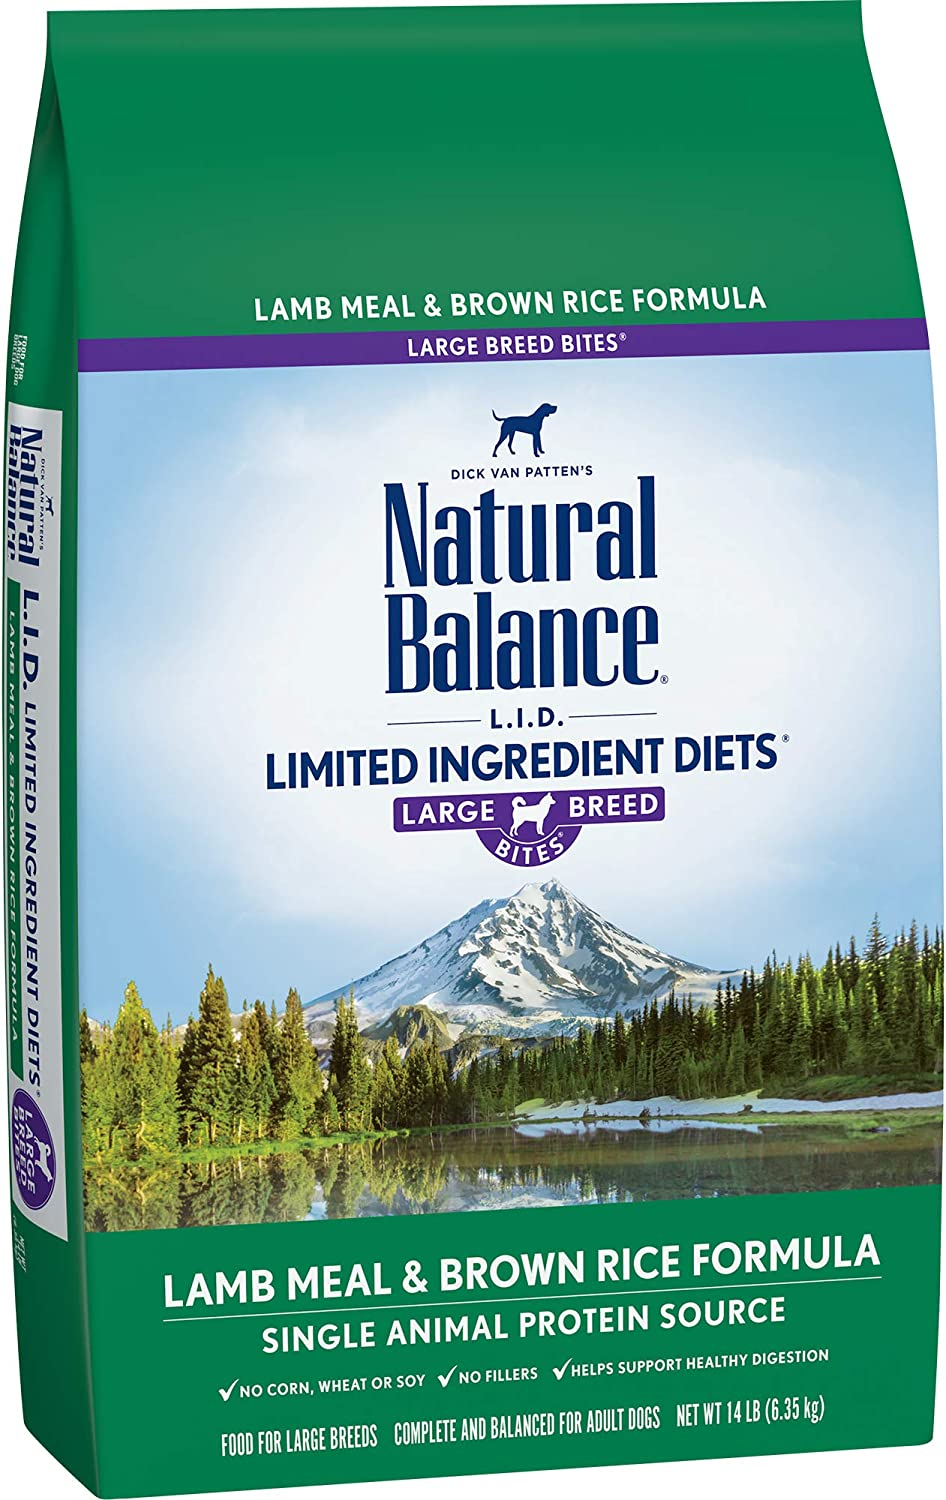 Natural Balance L.I.D. Limited Ingredient Diets Large Breed Bites Dry Dog Food, Lamb Meal Brown Rice